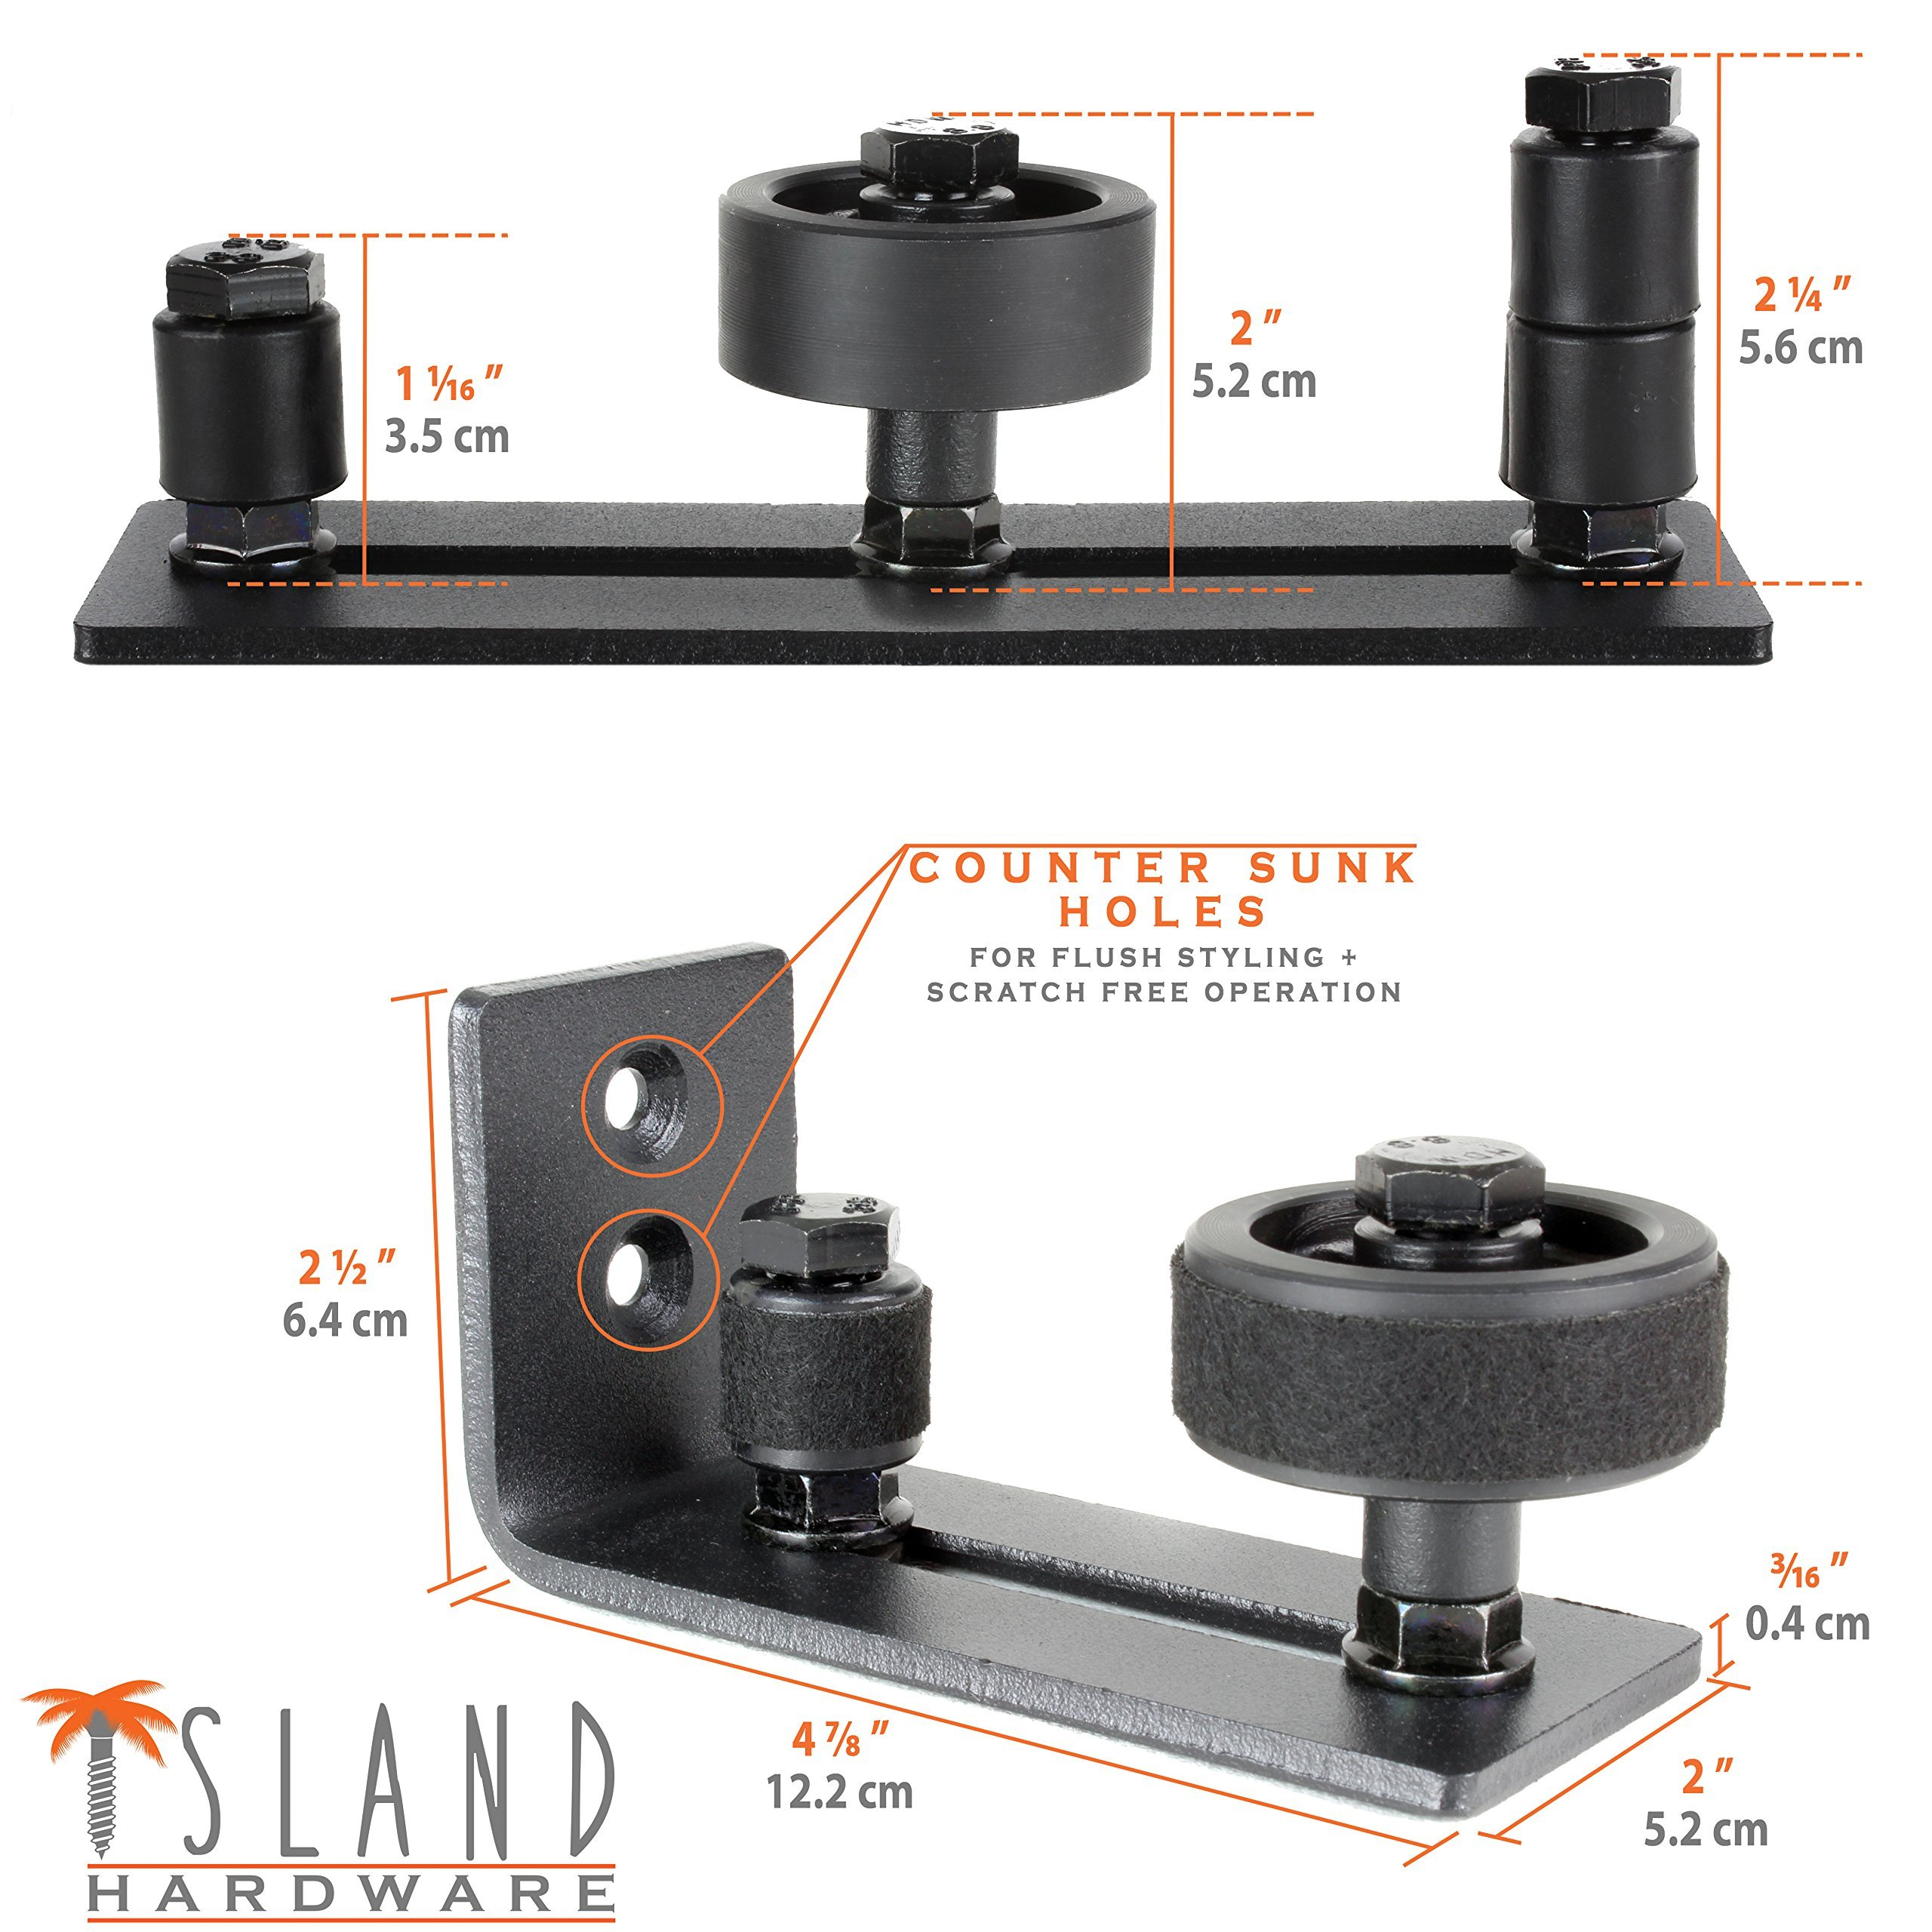 Ultimate Barn Door Floor Guide - Adjustable Sliding Channel & Stay Roller by Island Hardware with 13 Different Setups - Premium Black Finish, Wall Mounted & Flush to Floor, Fits All Barn Doors by Island Hardware (Image #7)